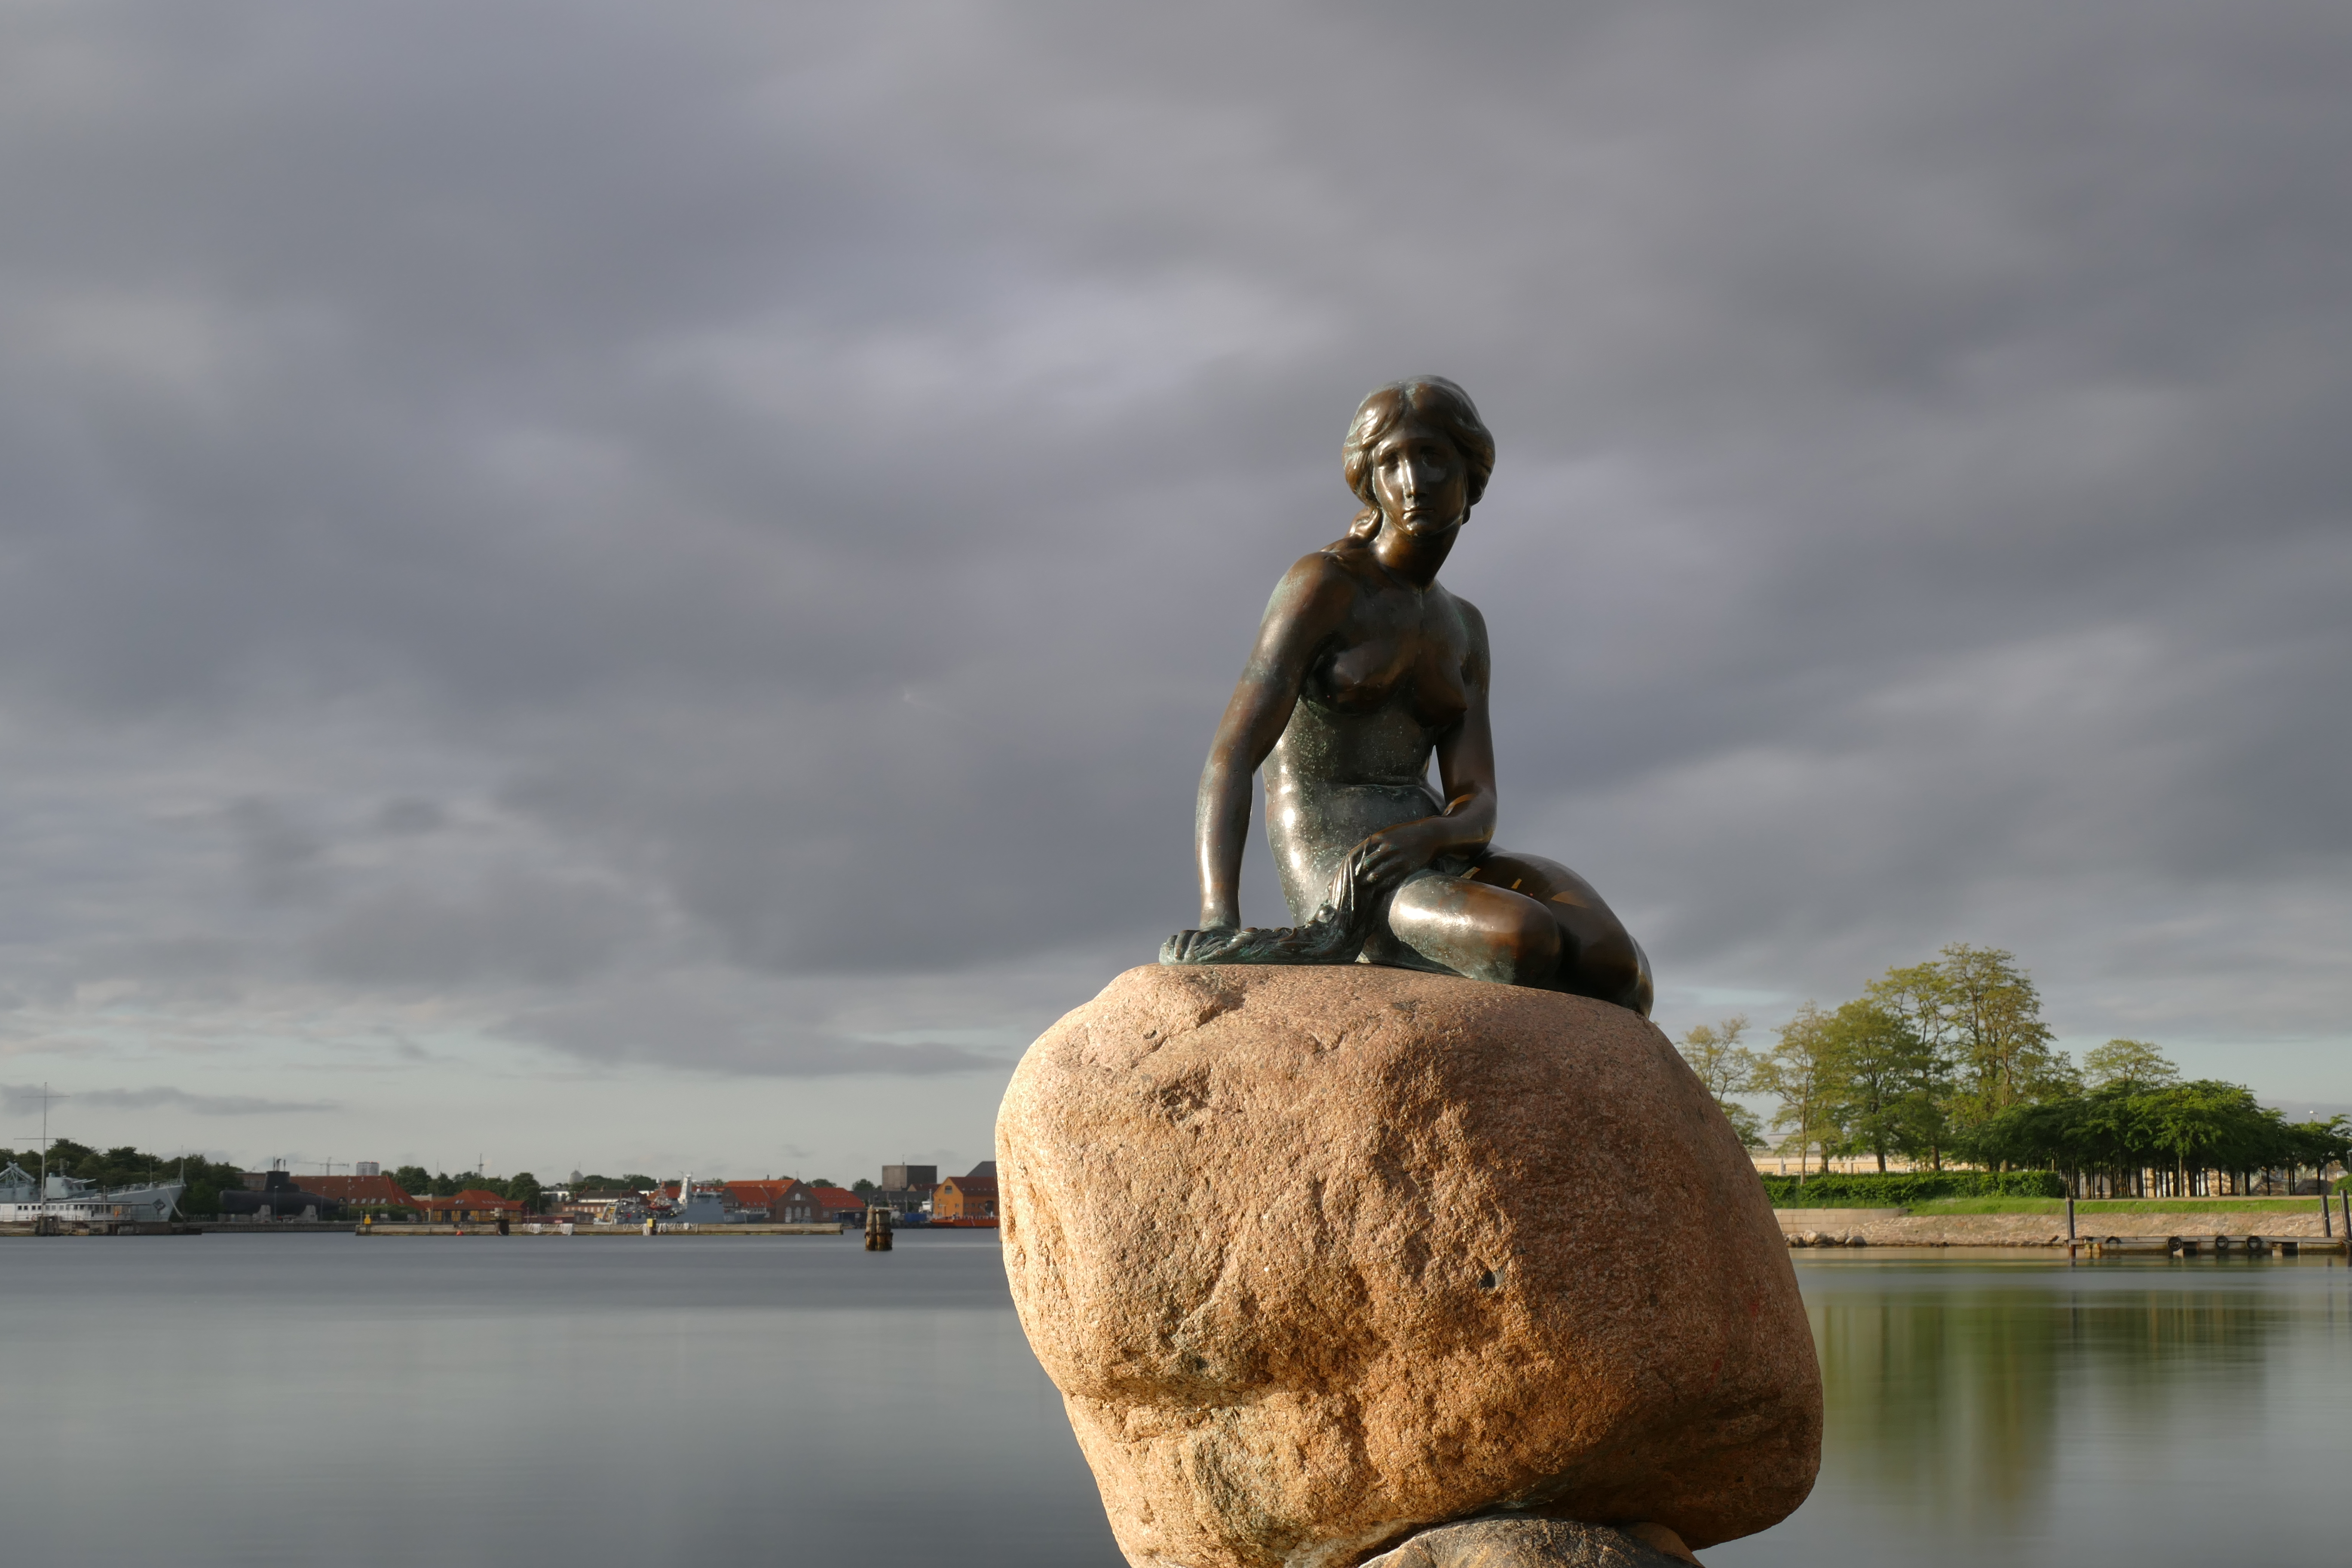 Little Mermaid in Copenhagen during Sunrise